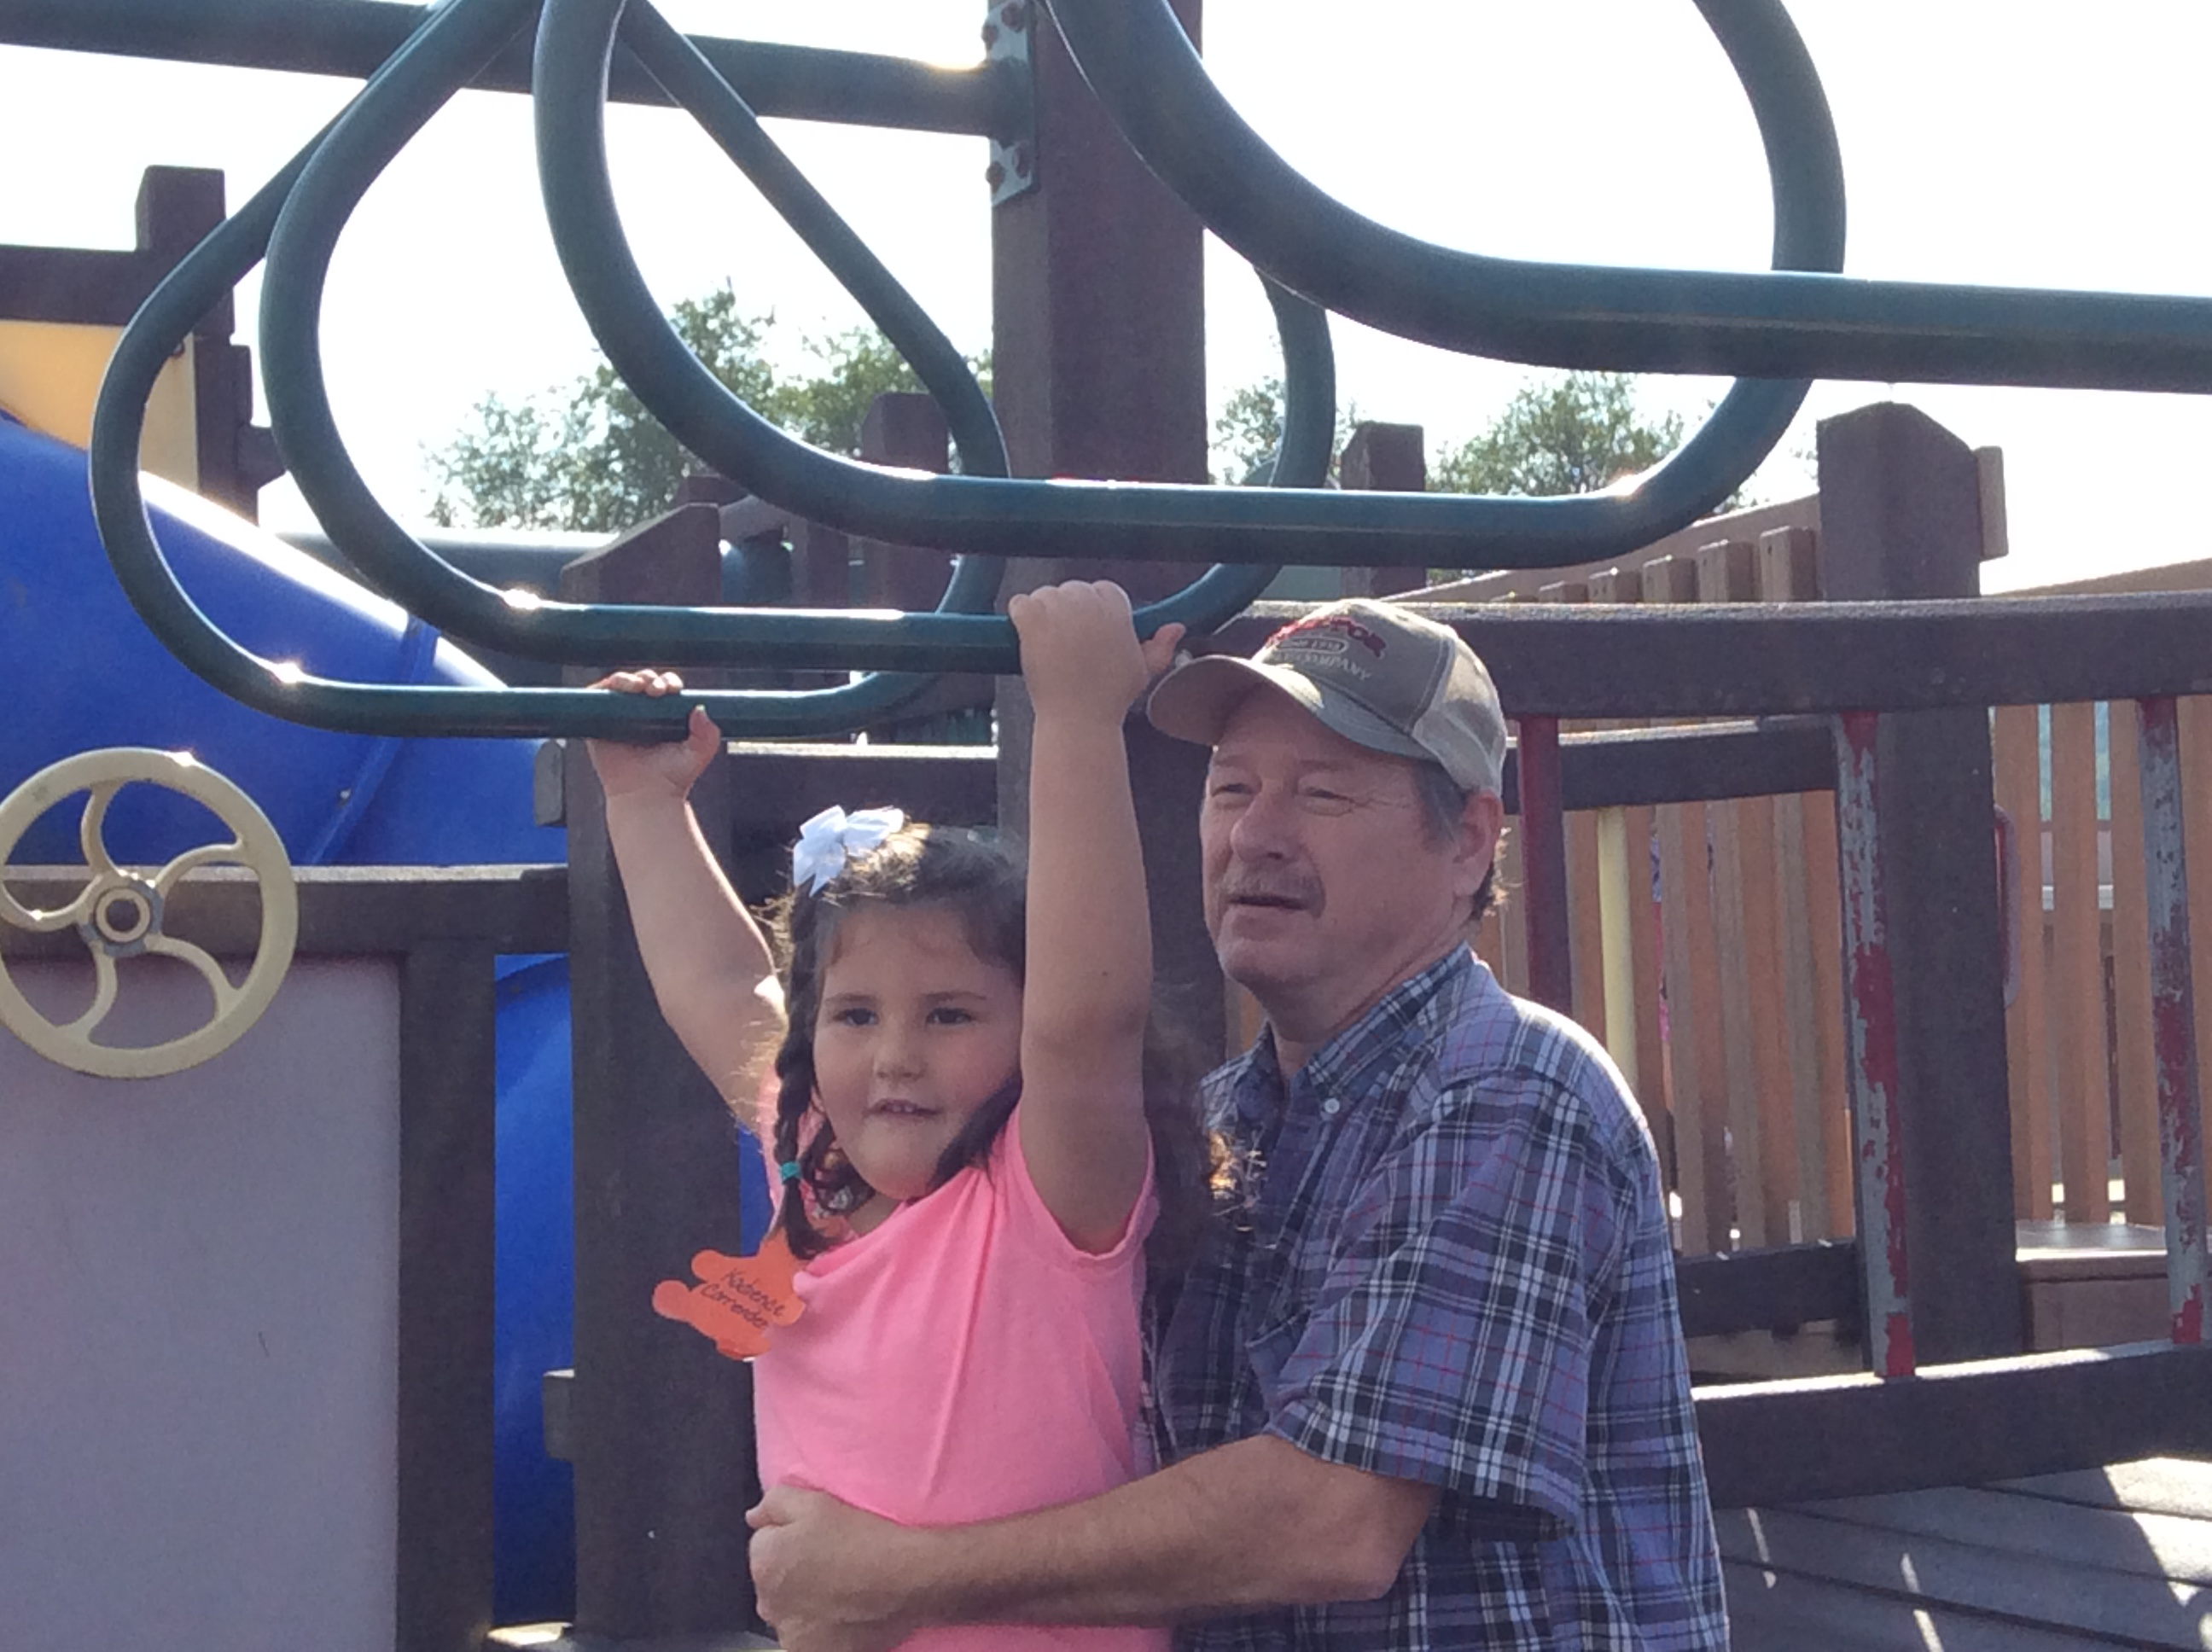 Kadience Carrender gets help from grandpa Dwight Watson on the monkeybars during Grandparents Week, Ms. Hellen Duncan's class.